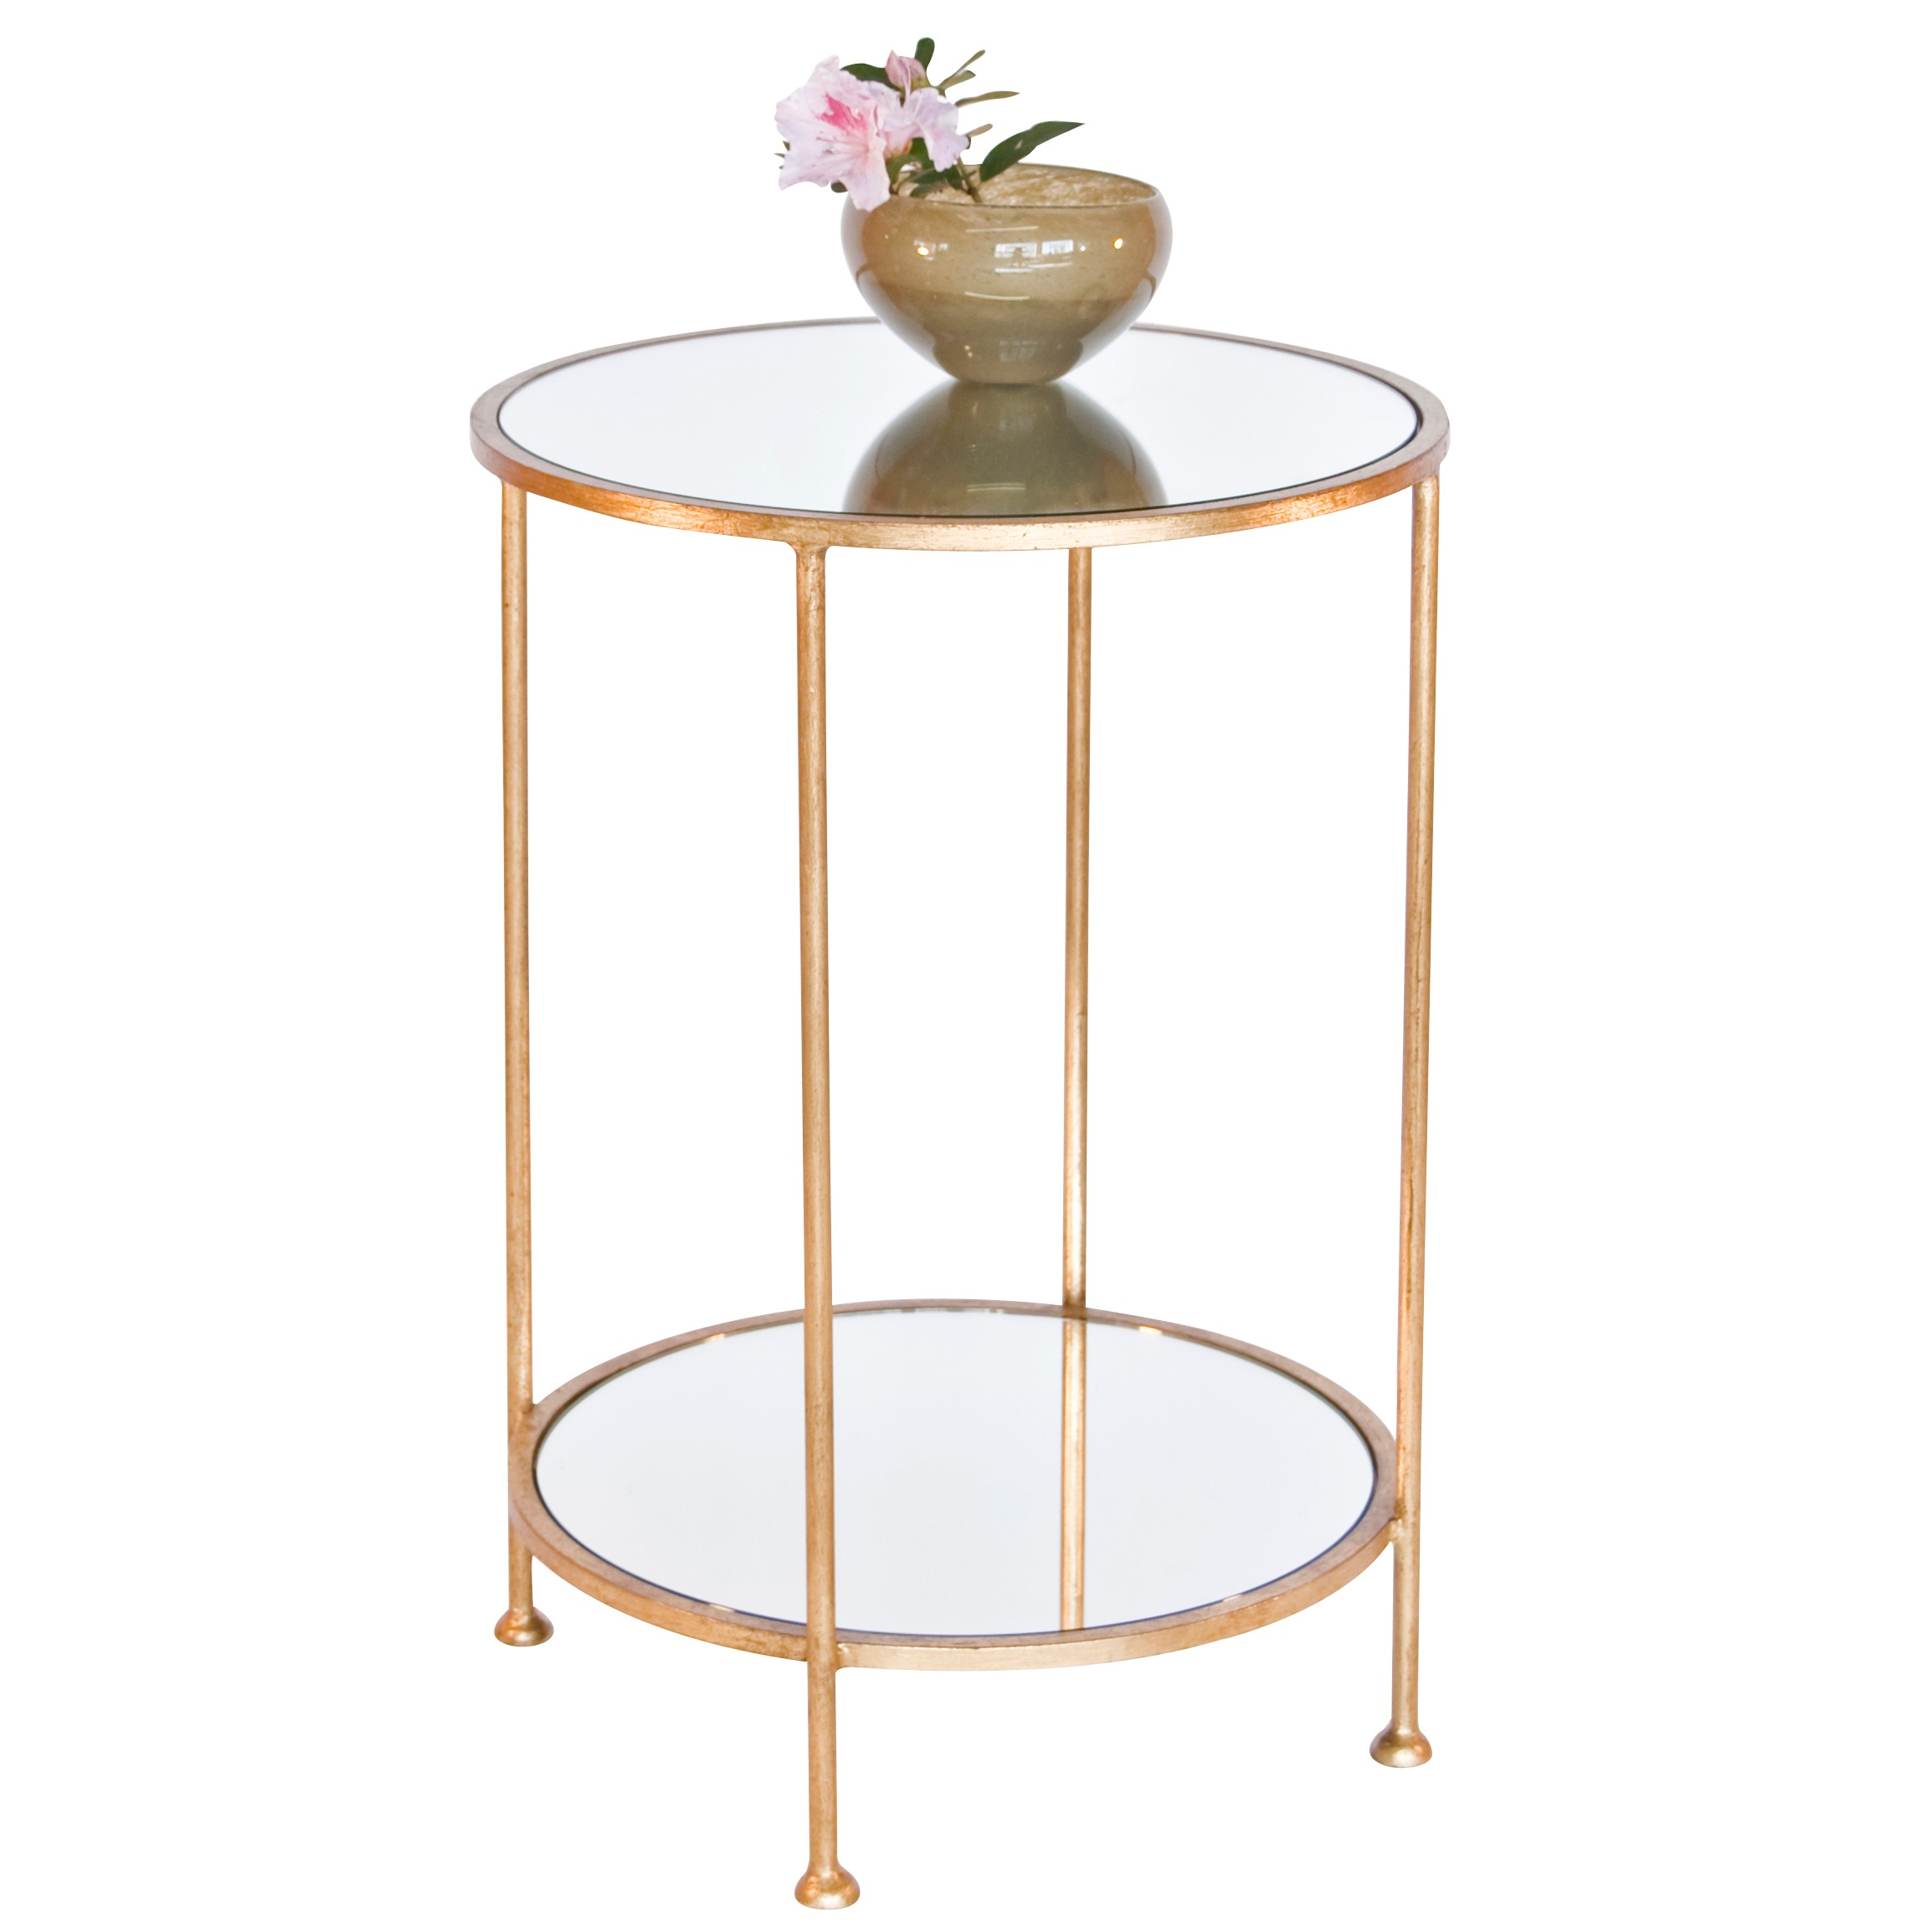 furniture elegant mirrored accent table for home ideas worlds away chico small tier gold leaf round occasional tables drawer end with storage drawers pedestal coffee bar side